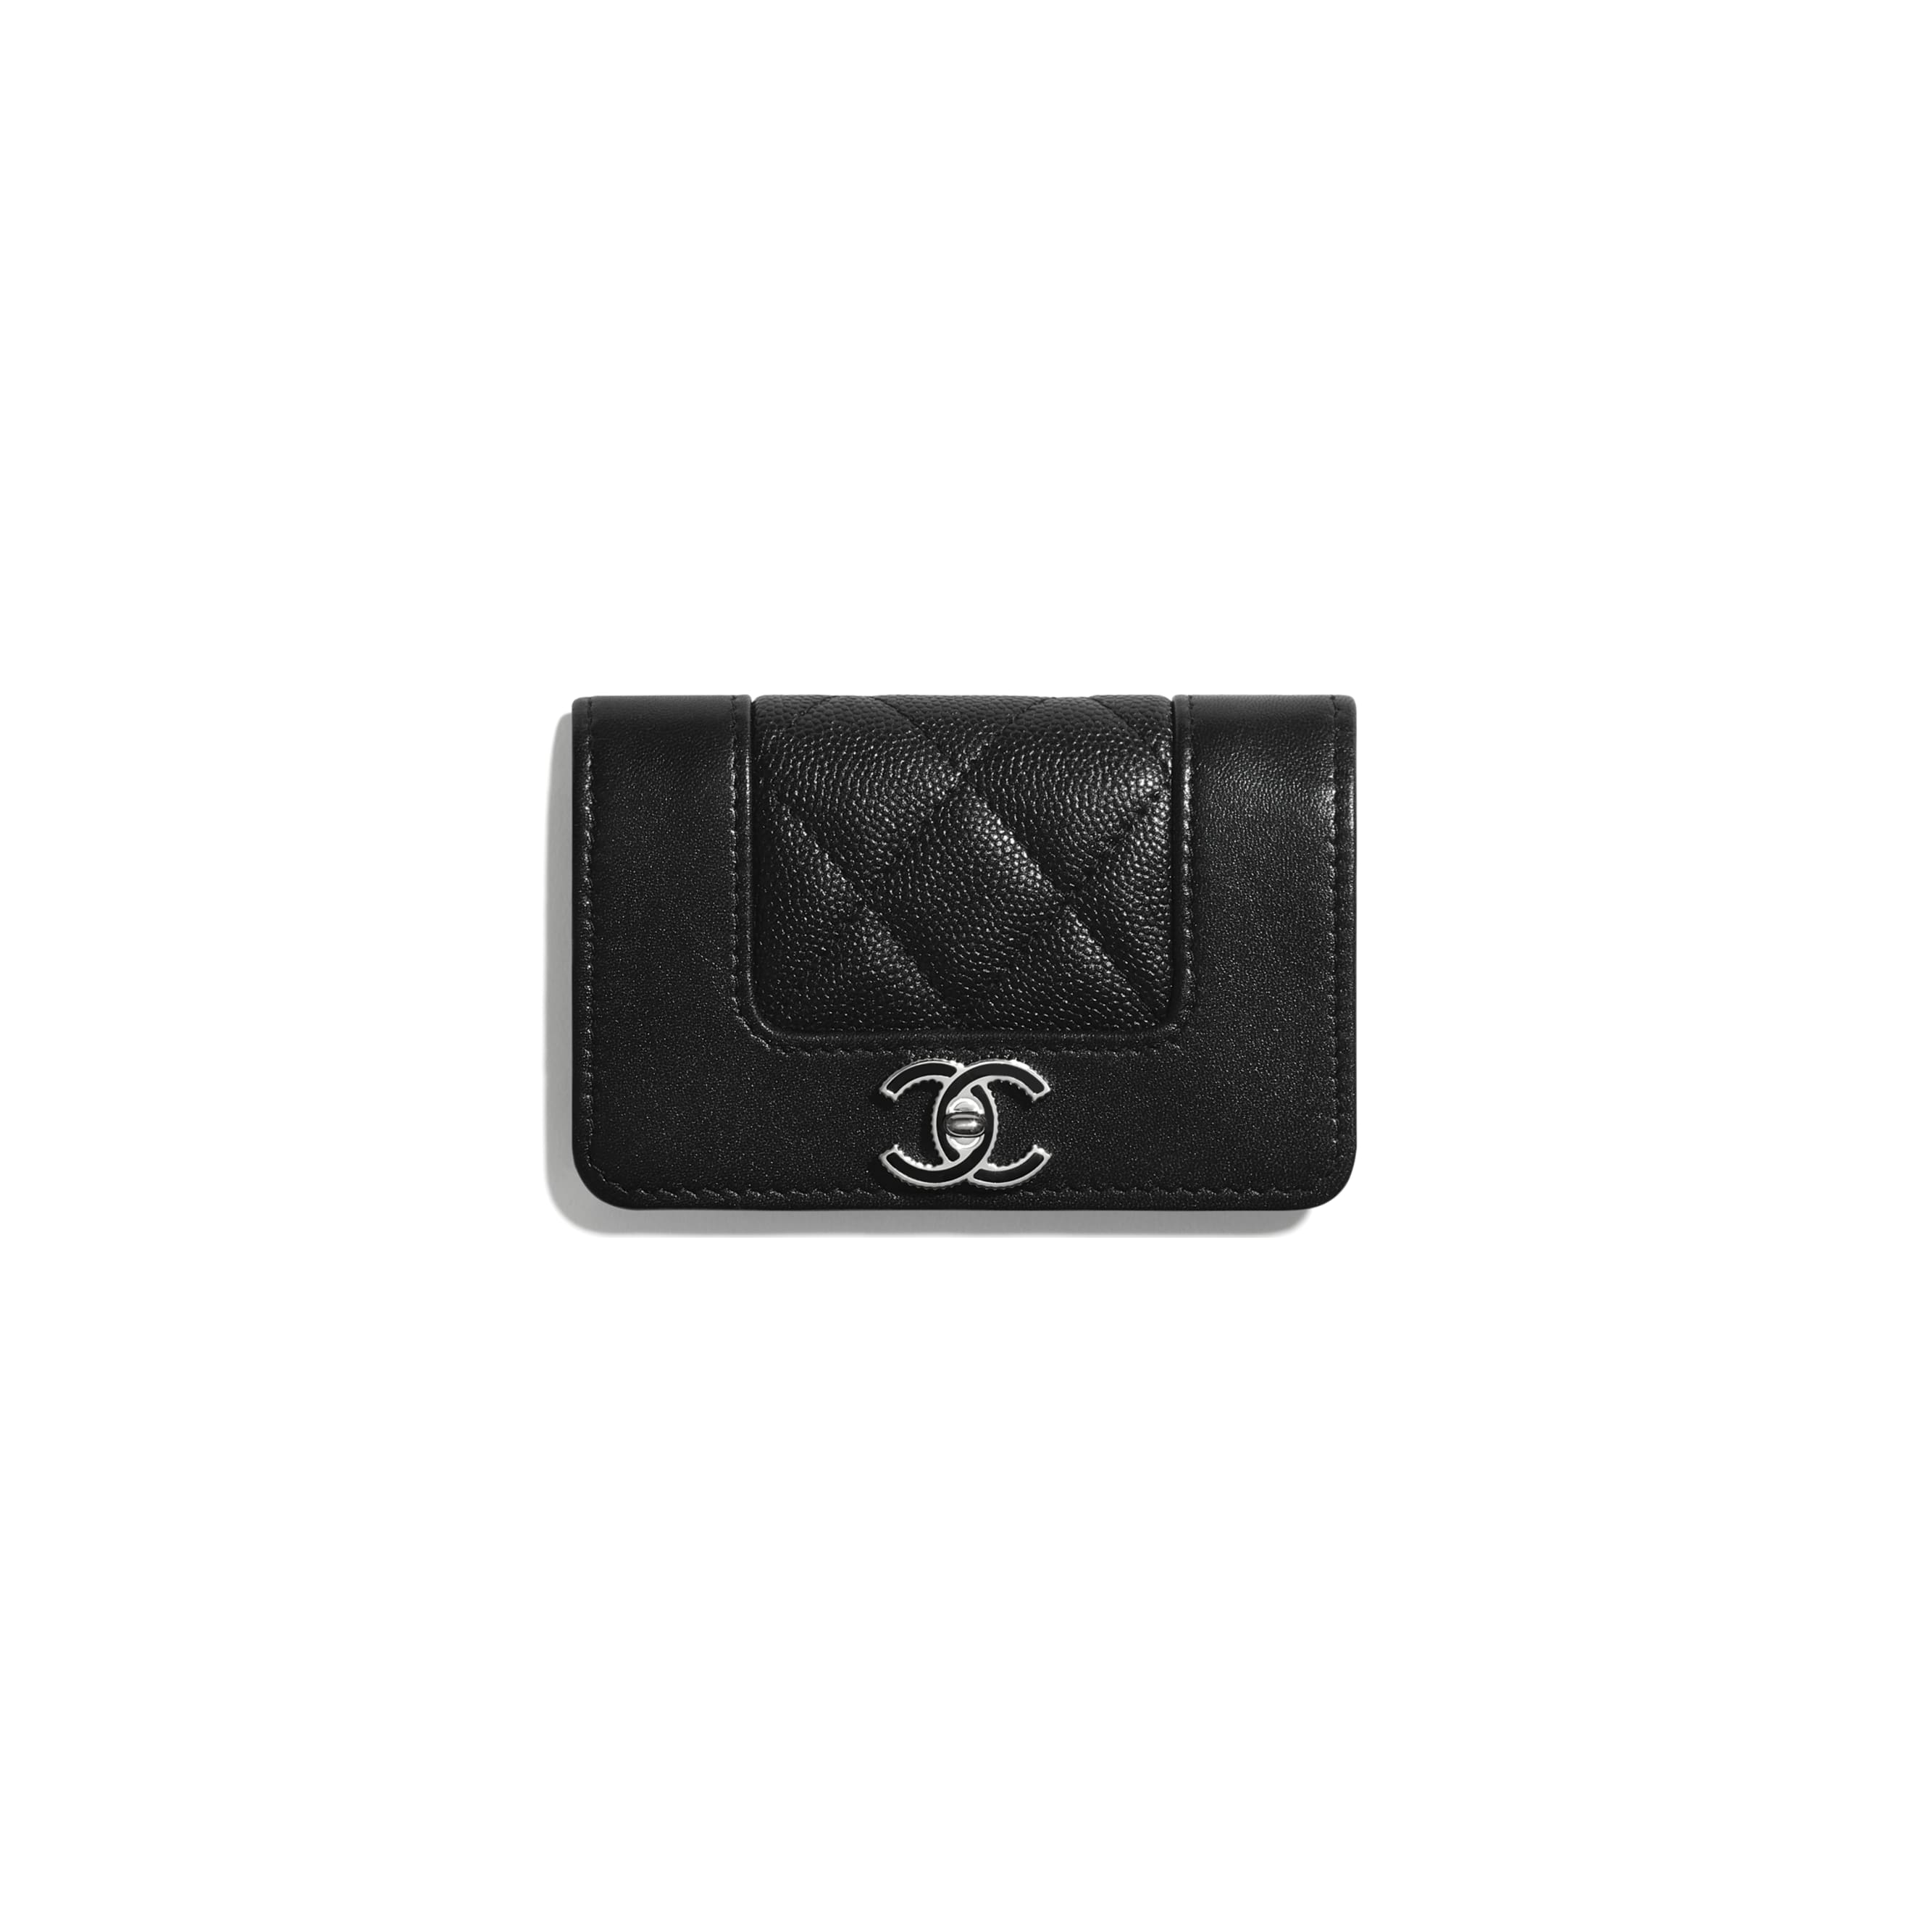 Flap Card Holder - Black - Grained Calfskin, Calfskin & Silver-Tone Metal - CHANEL - Default view - see standard sized version